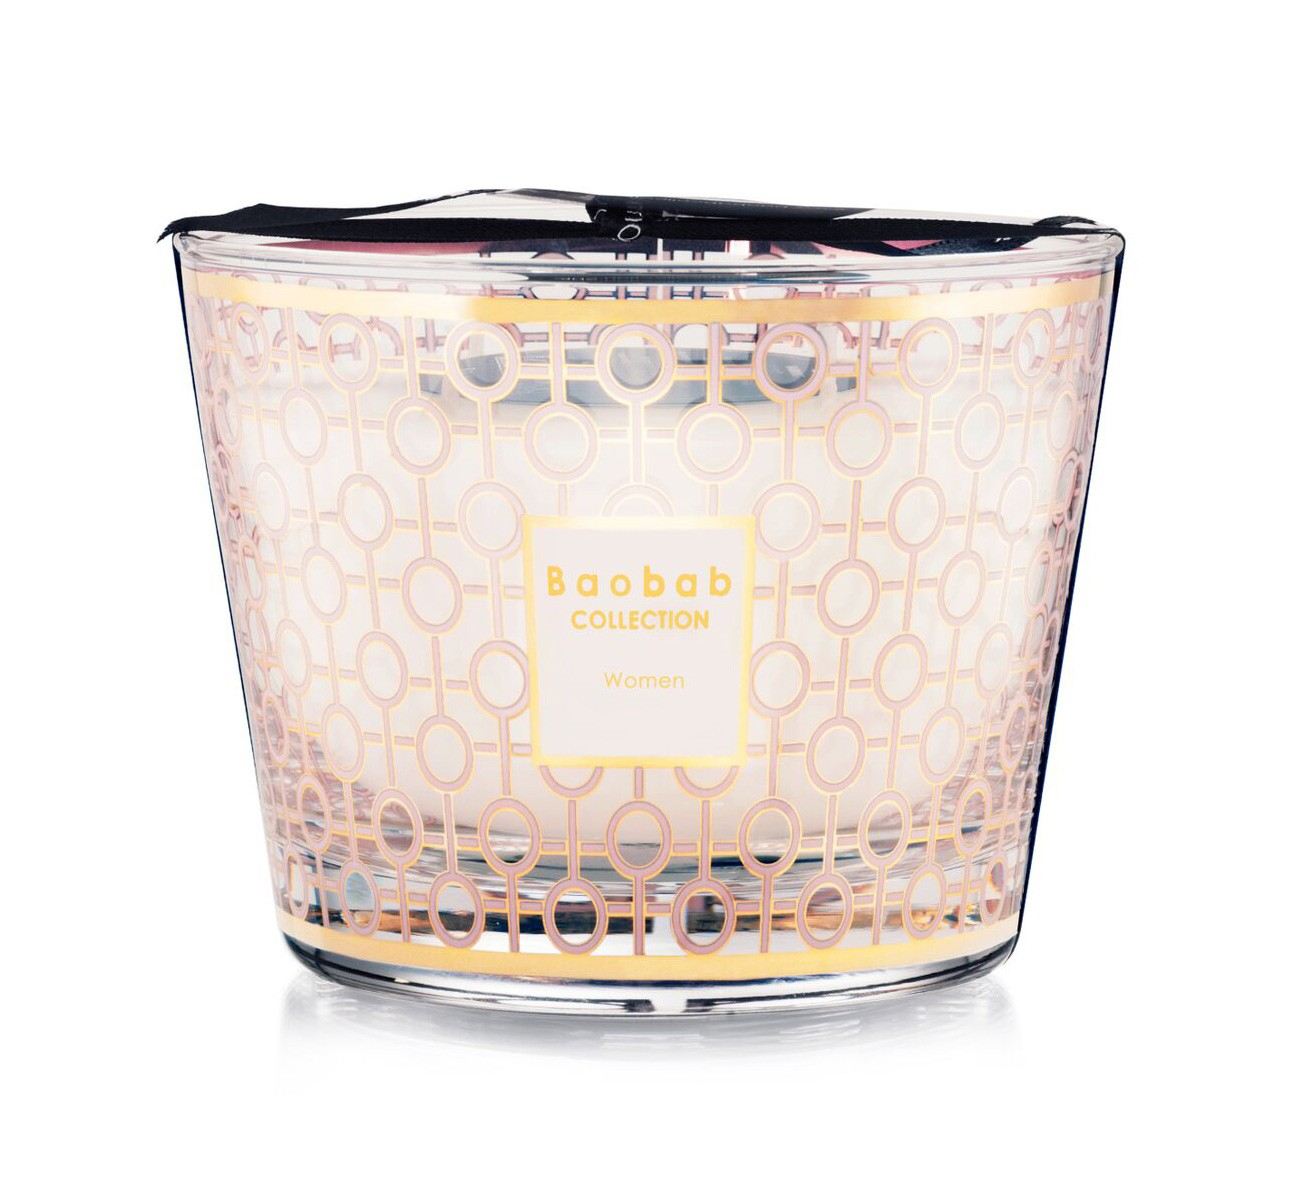 Bougie Baobab Paris Bougie Women De Baobab Collection 4 Tailles